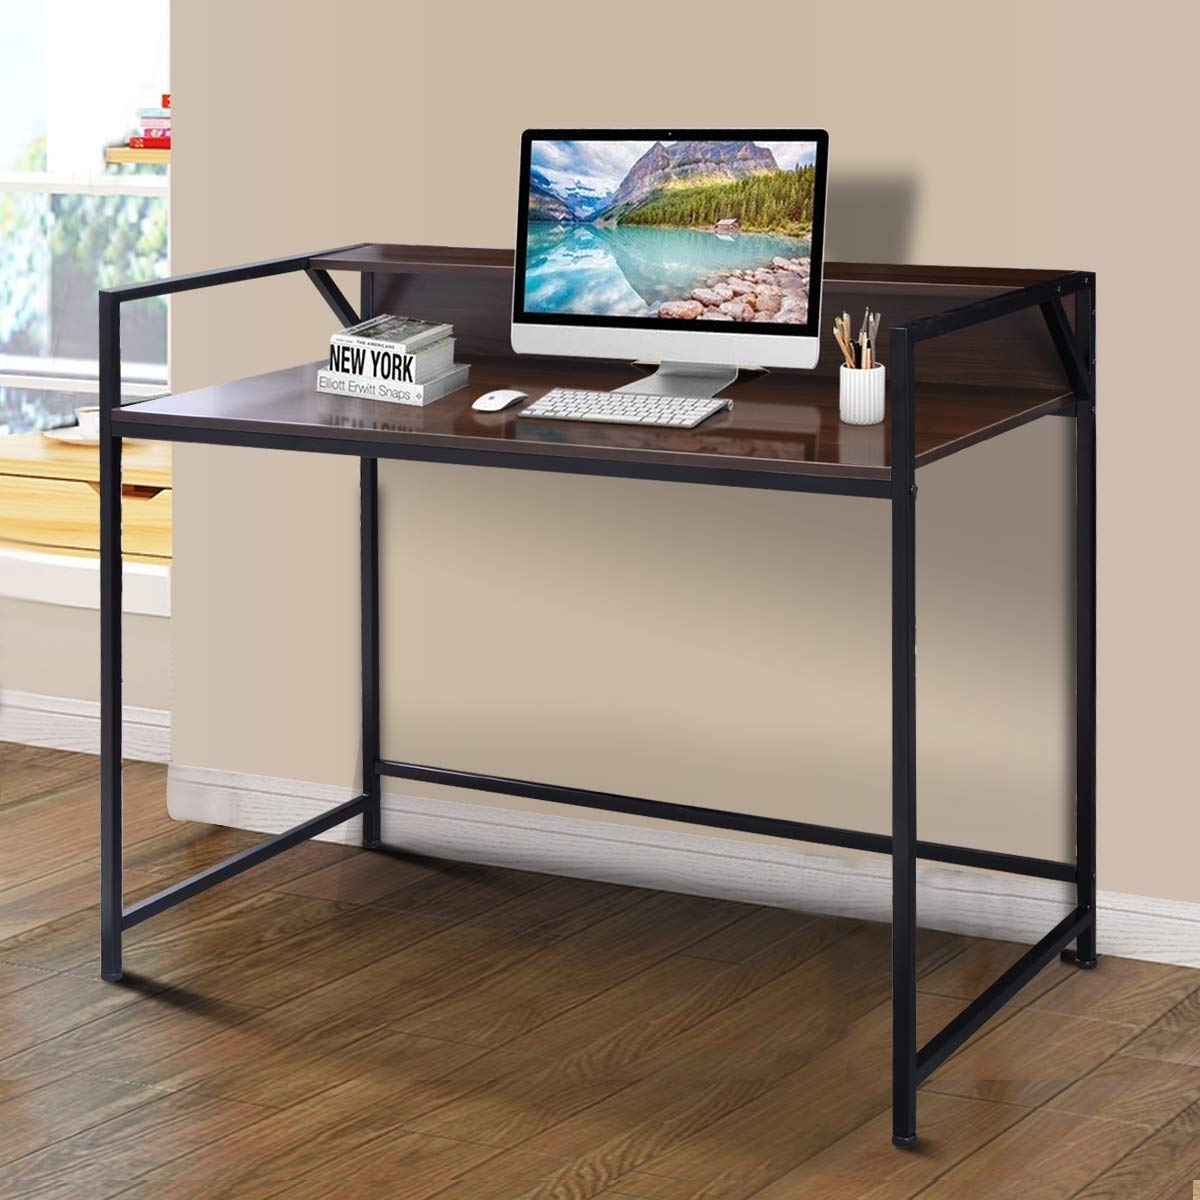 KING77777 Modern Simple and Unique Compact Design Simplistic Style Desk Computer Office Premium Quality Material Furniture by KING77777 (Image #4)